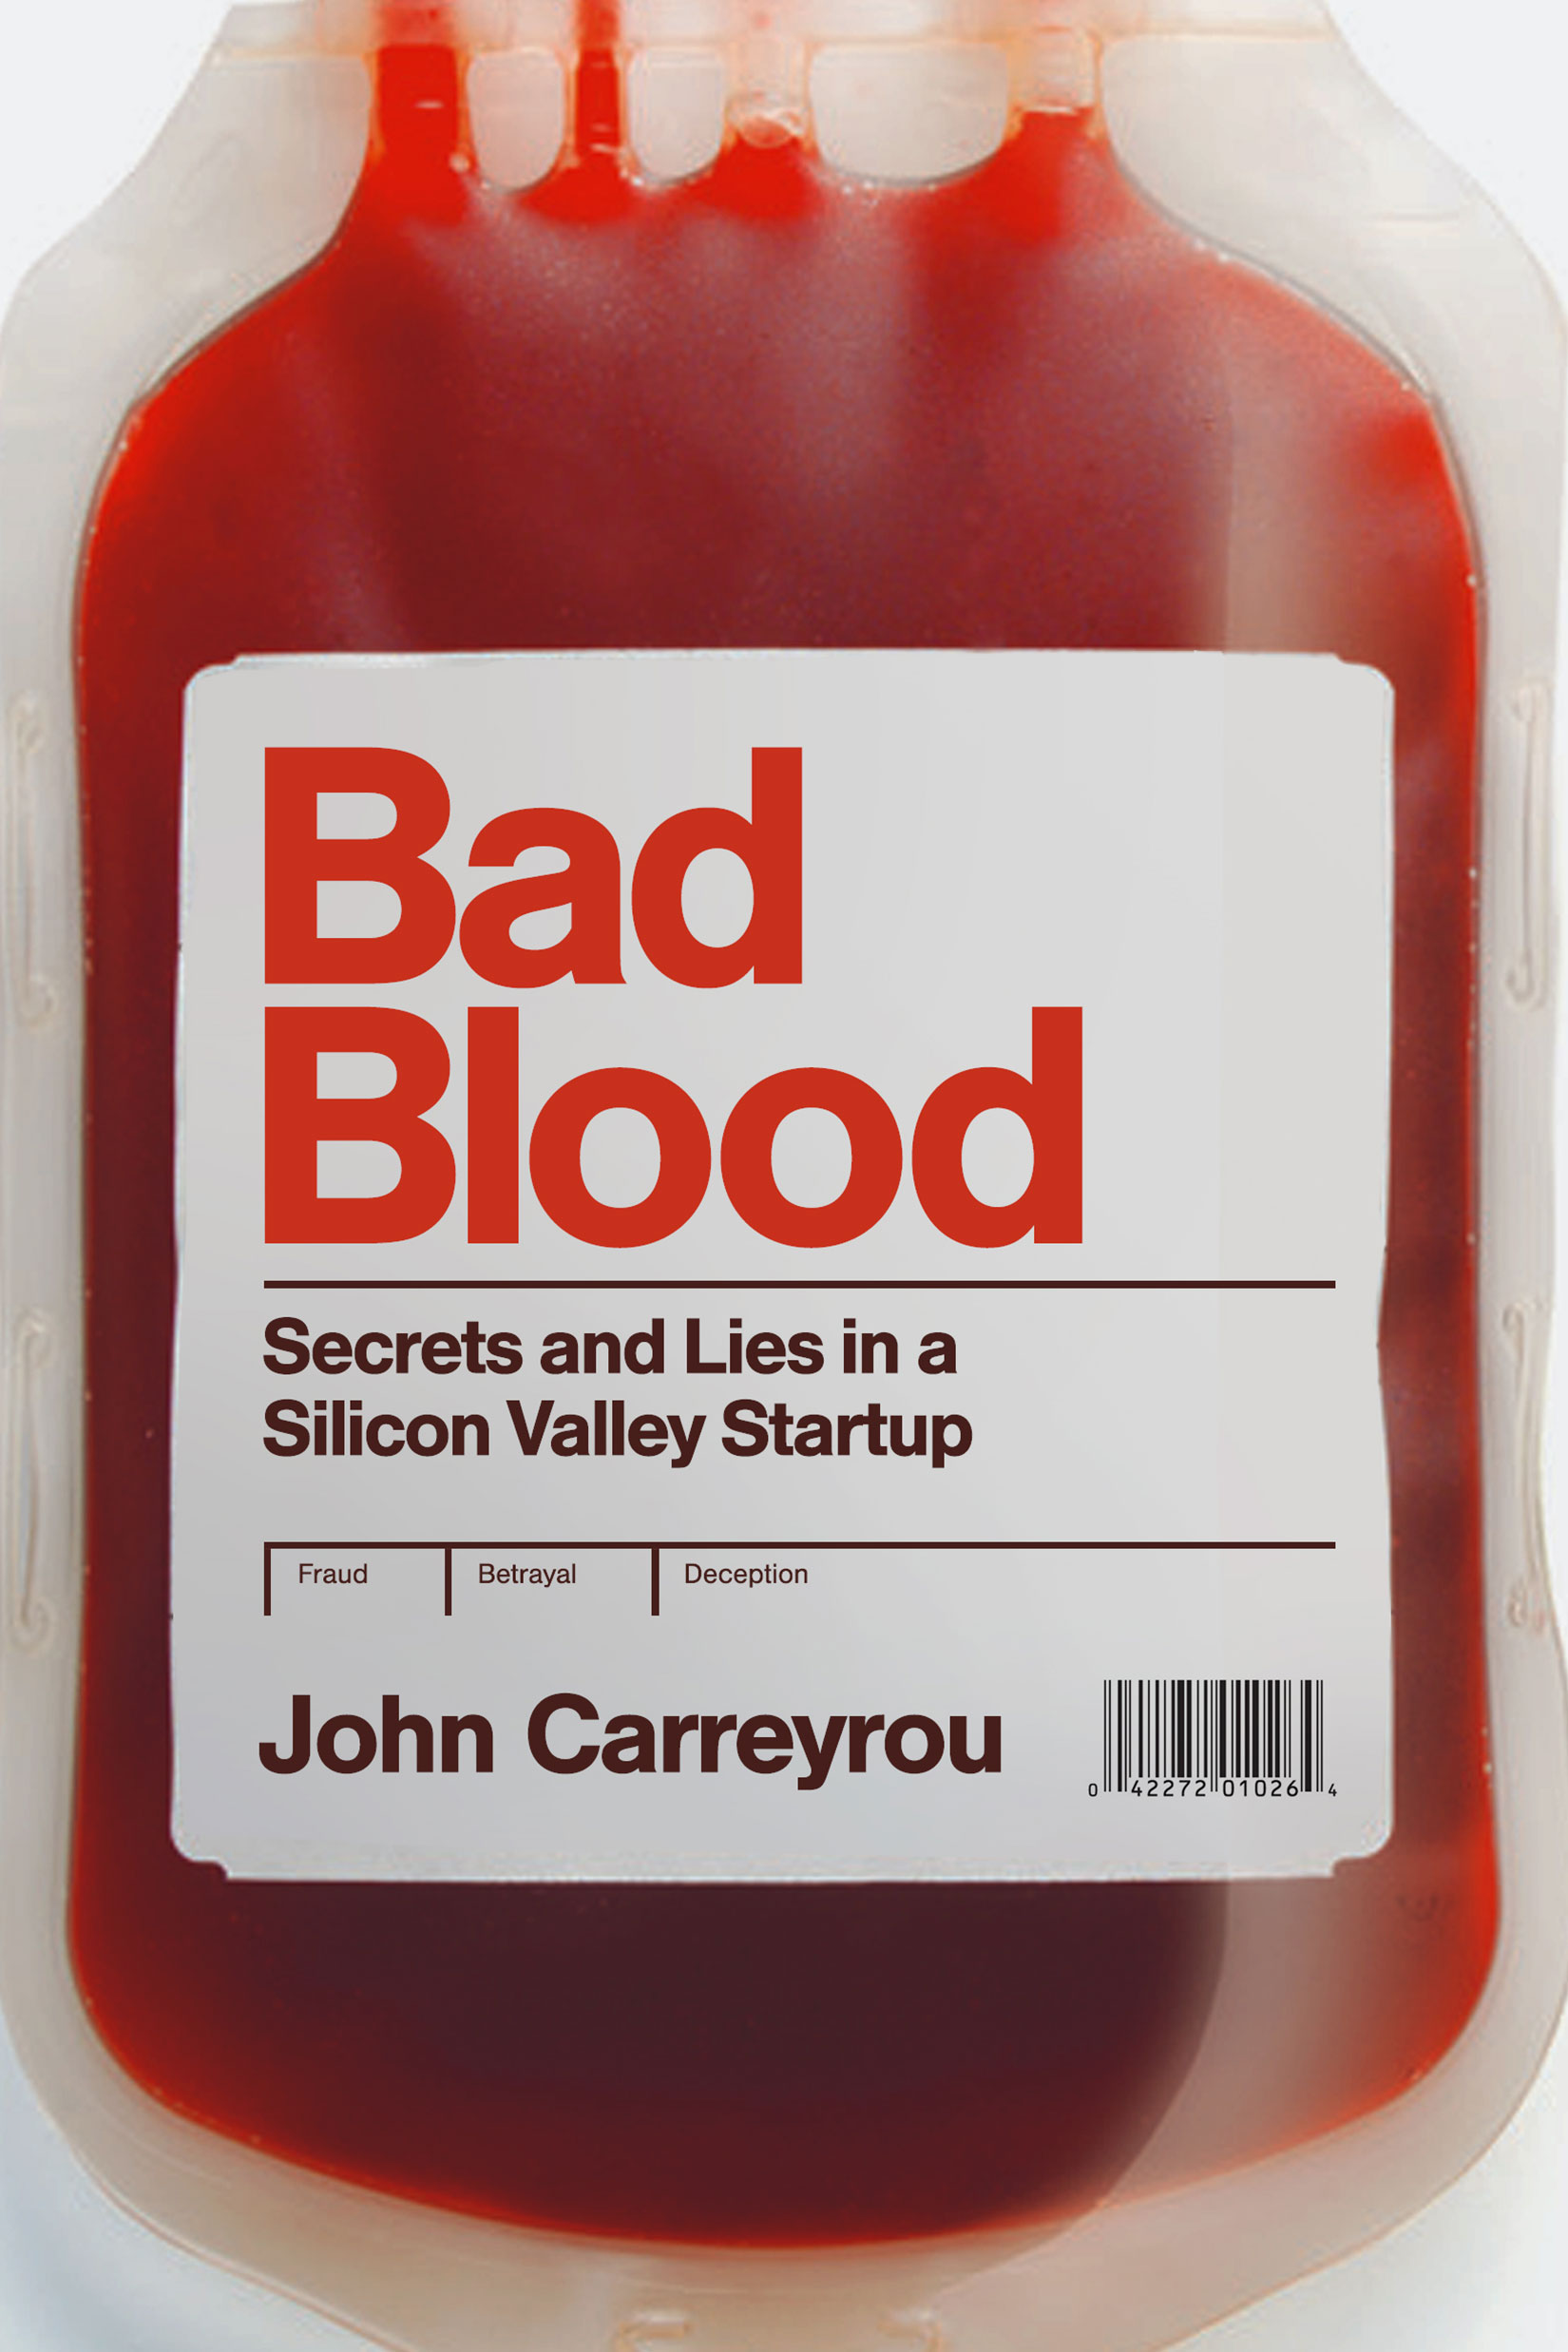 Bad Blood by John Carreyrou Designed by Ben Mautner for One Hour Covers